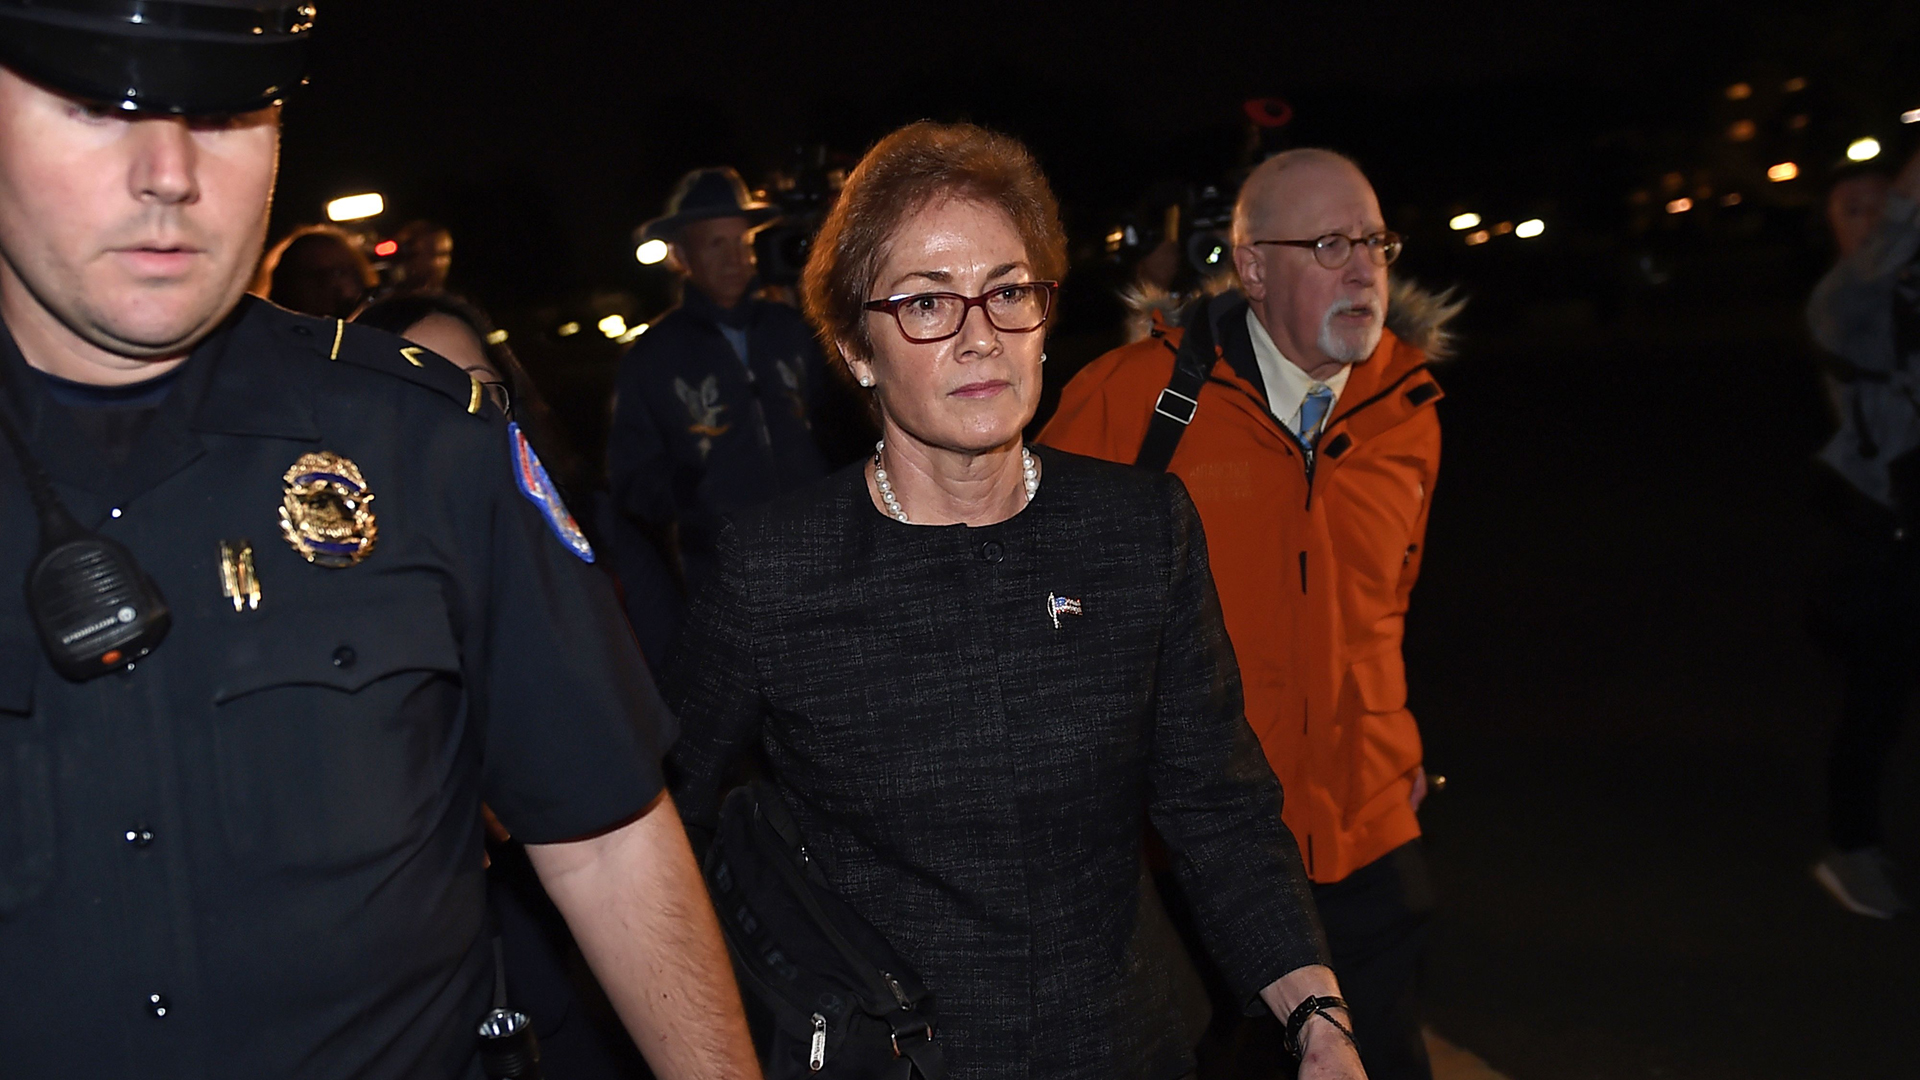 Former US Ambassador to Ukraine Marie Yovanovitch (C) flanked by lawyers, aides and Capitol police, leaves the US Capitol October 11, 2019 in Washington, DC after testifying behind closed doors to the House Intelligence, Foreign Affairs and Oversight committees as part of the ongoing impeachment investigation against President Donald Trump. (Credit: Olivier Douliery/AFP/Getty Images)